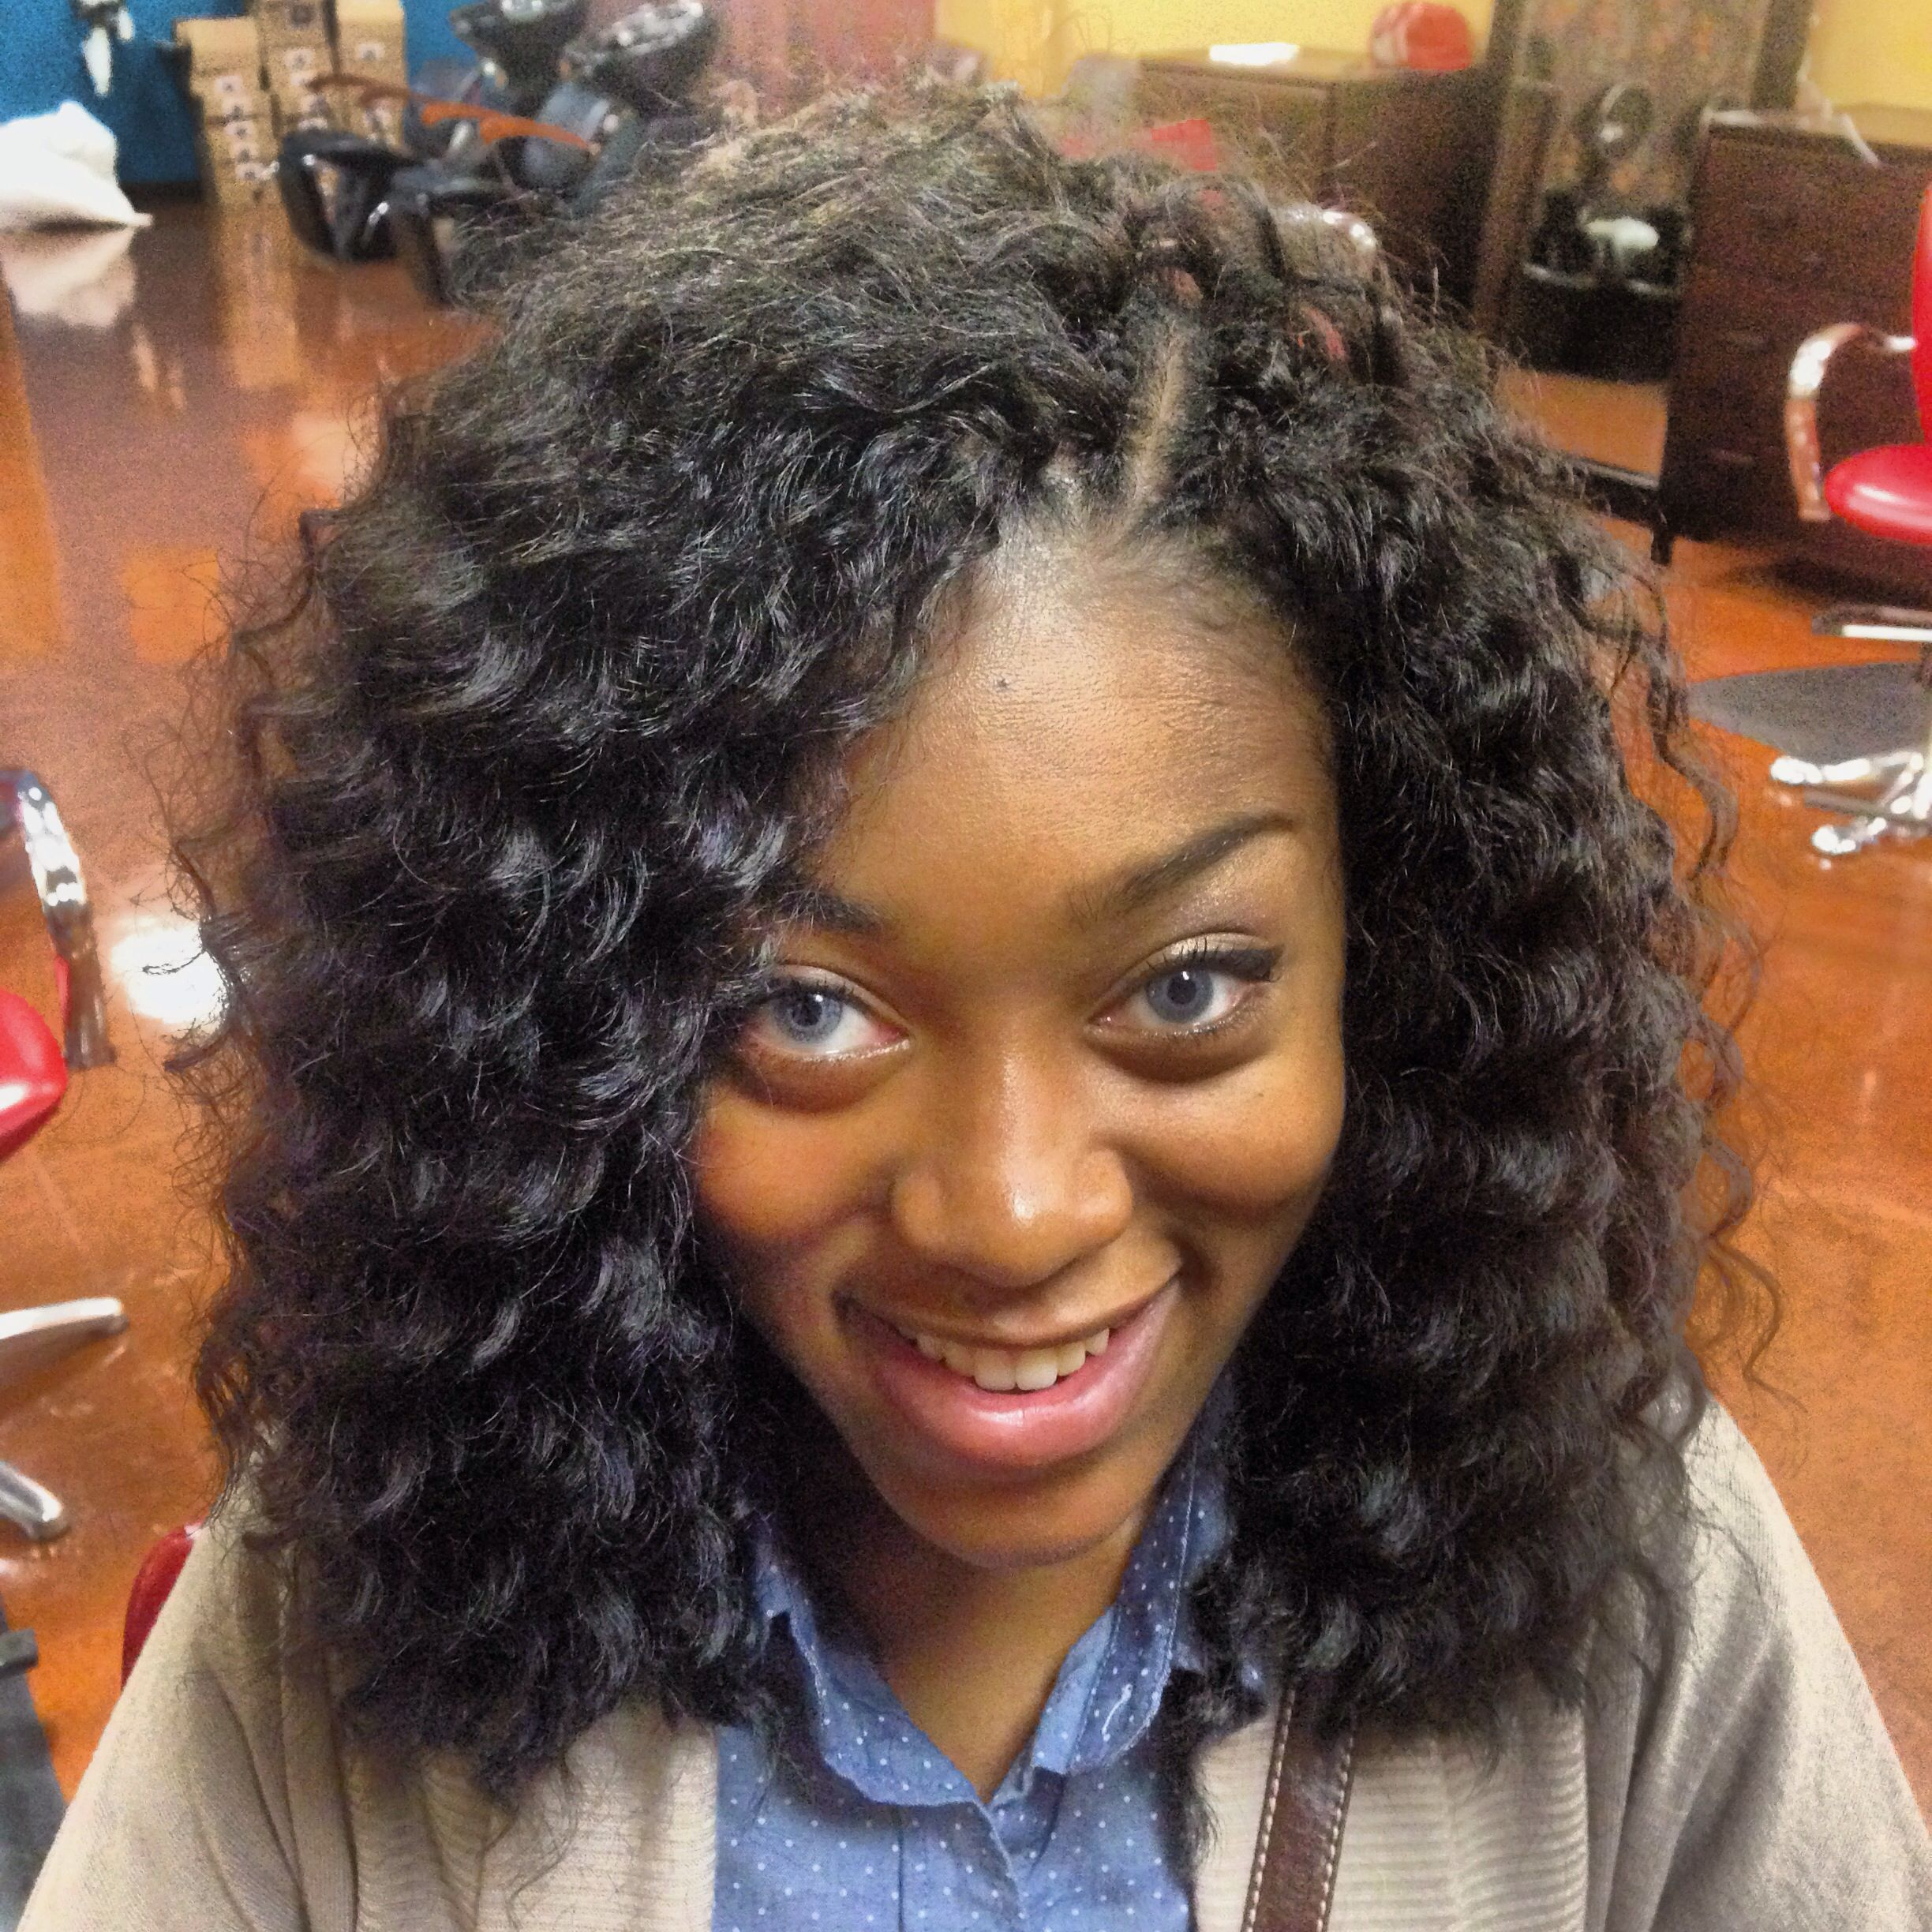 African American Hair Salons In Cordova Tn: Crochet Braids/ Latch Stitch Weaving By Takeisha At A